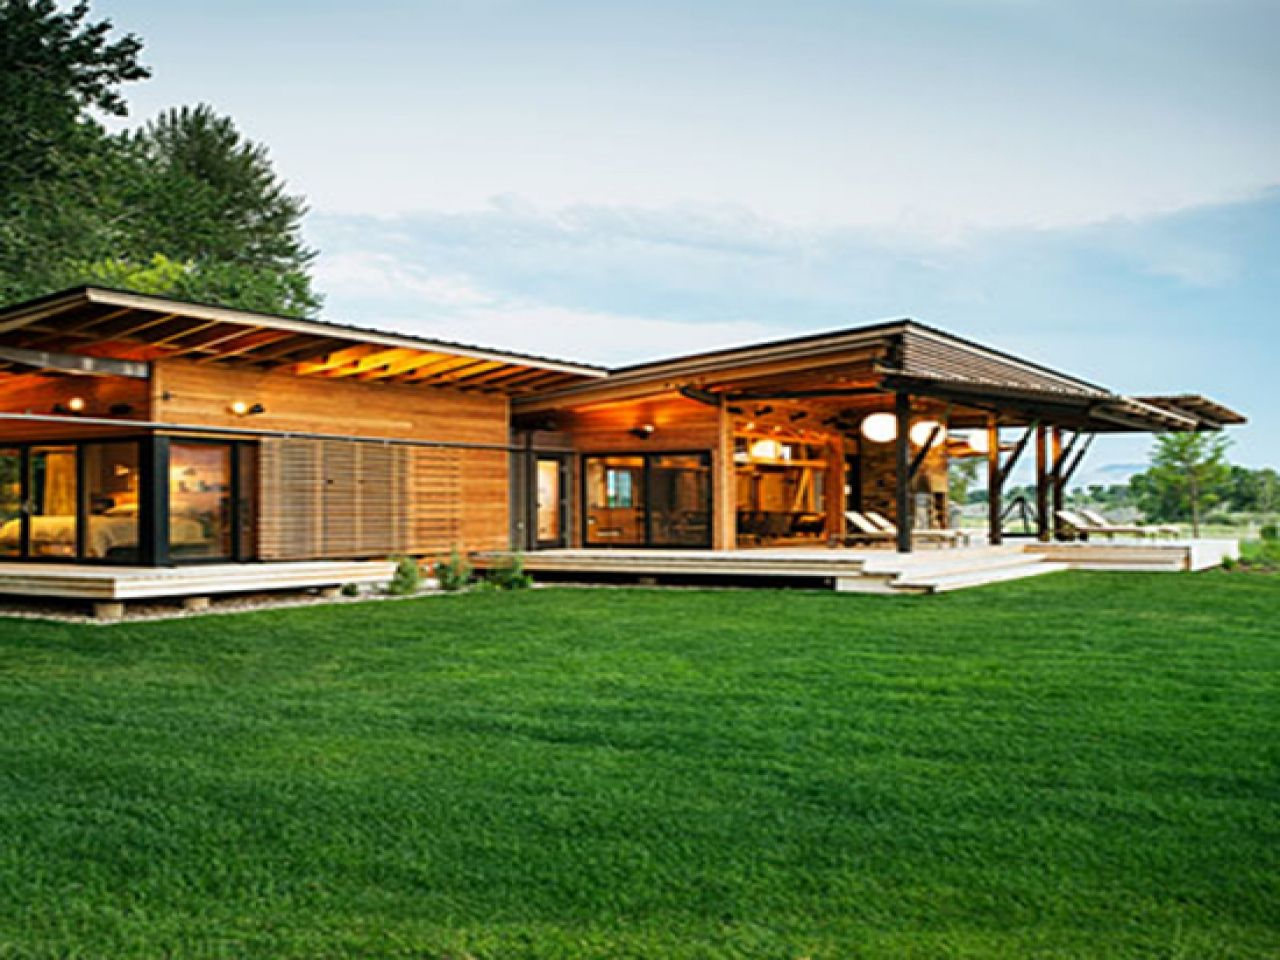 ranch house designs Yahoo Image Search